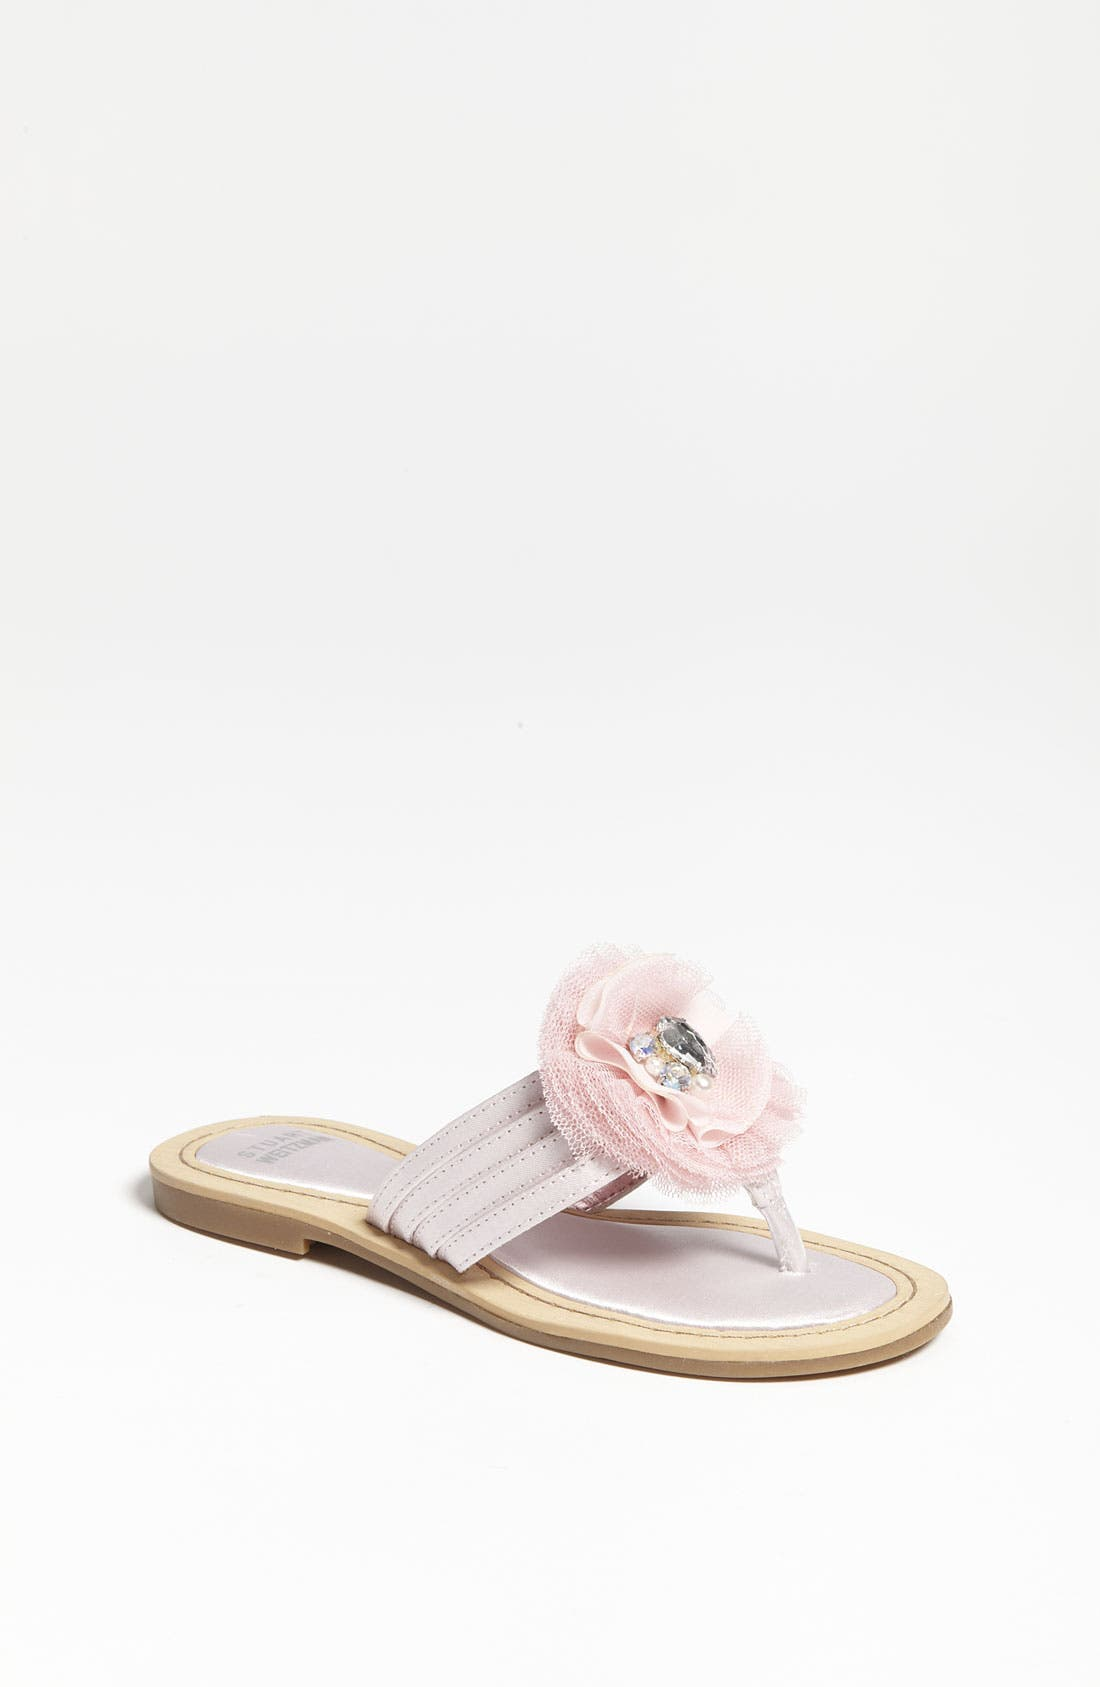 Main Image - Stuart Weitzman 'Tutu' Sandal (Toddler, Little Kid & Big Kid)